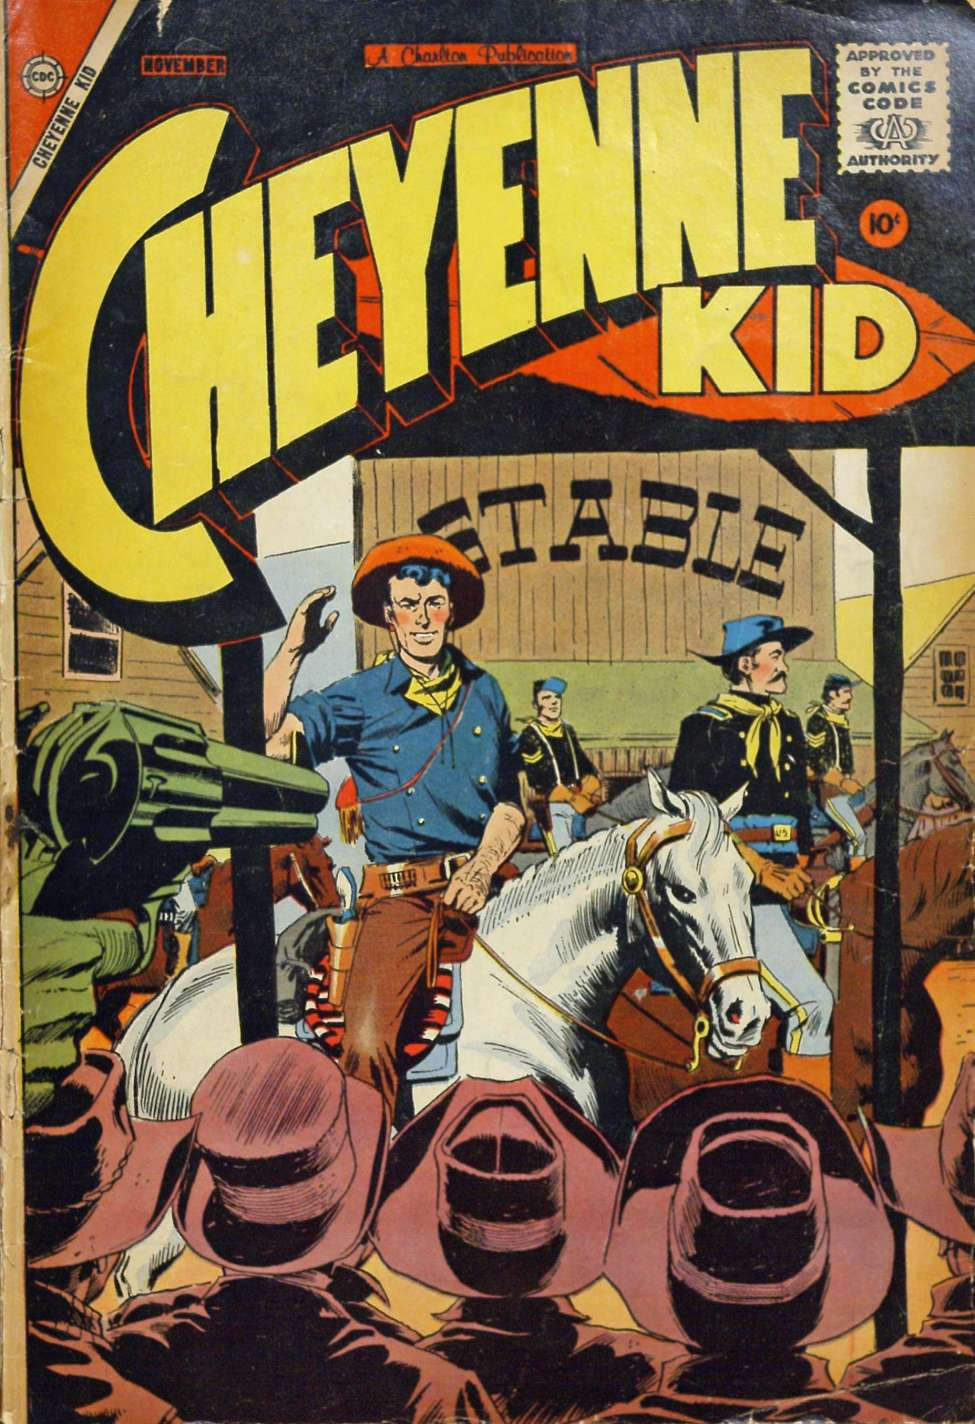 Comic Book Cover For Cheyenne Kid #14 - Version 1